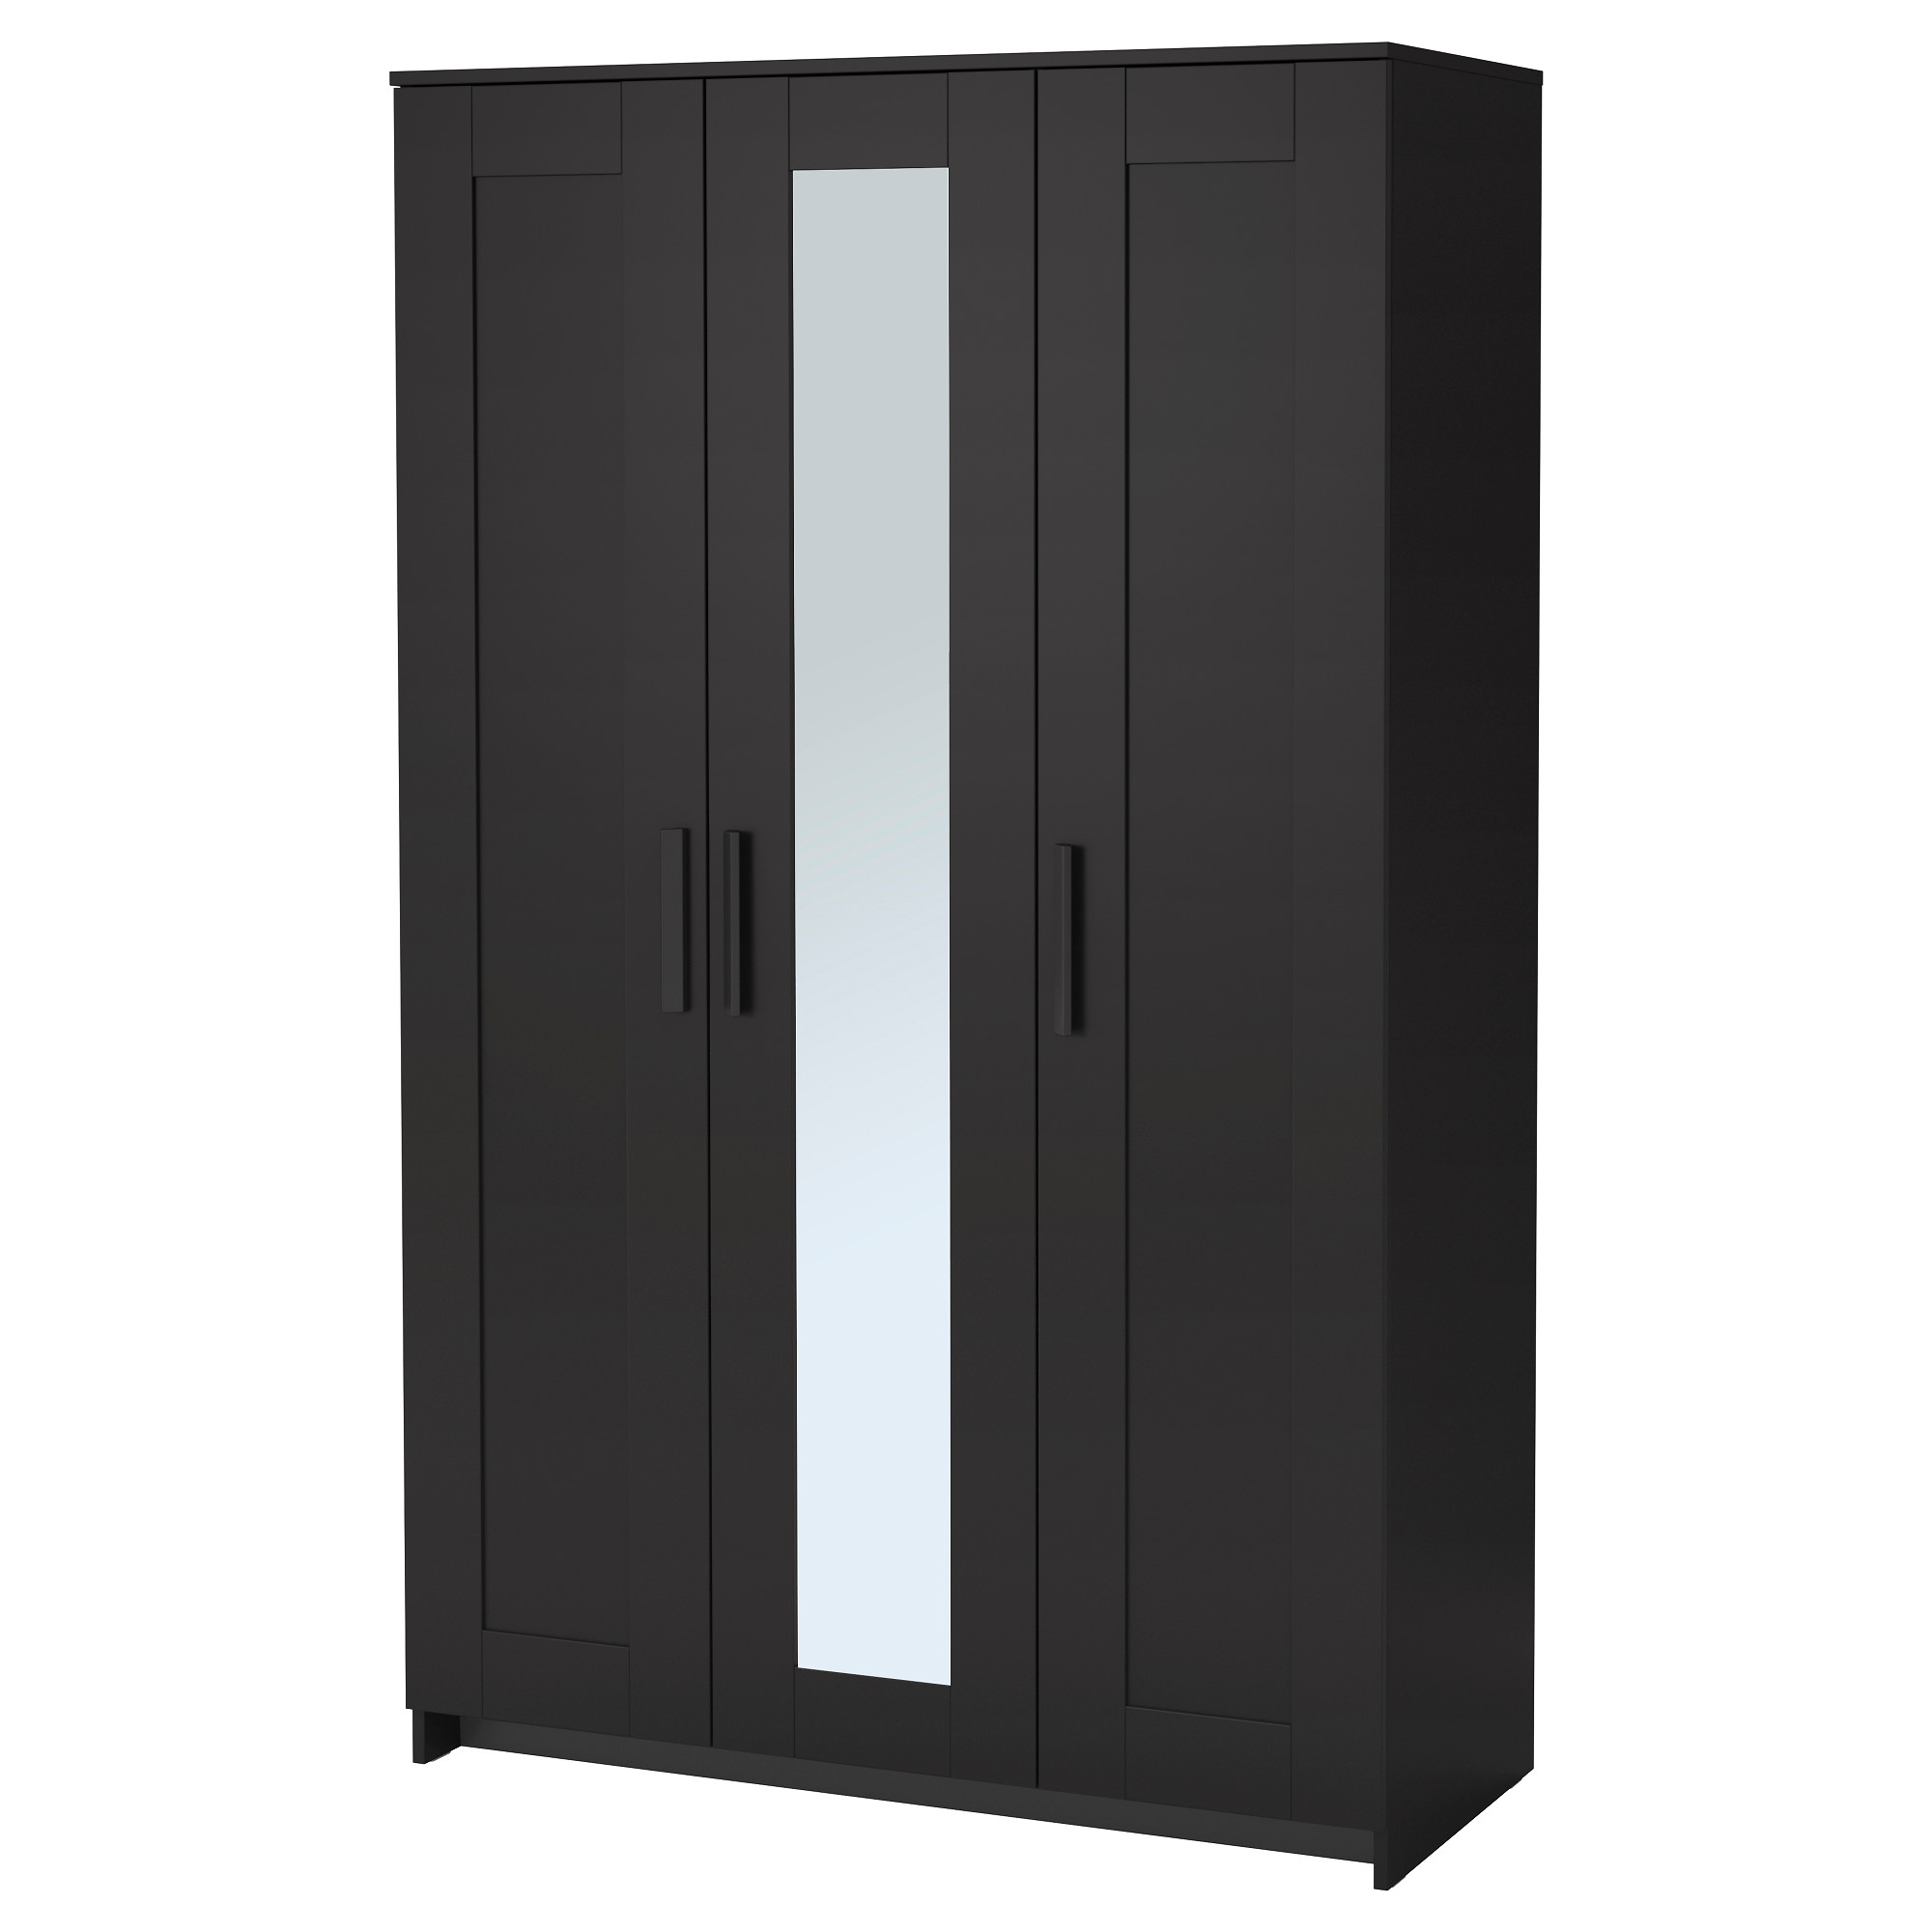 Ikea Galant Open Storage Combination ~   Doors Related Keywords & Suggestions  Aspelund Wardrobe With 3 Doors